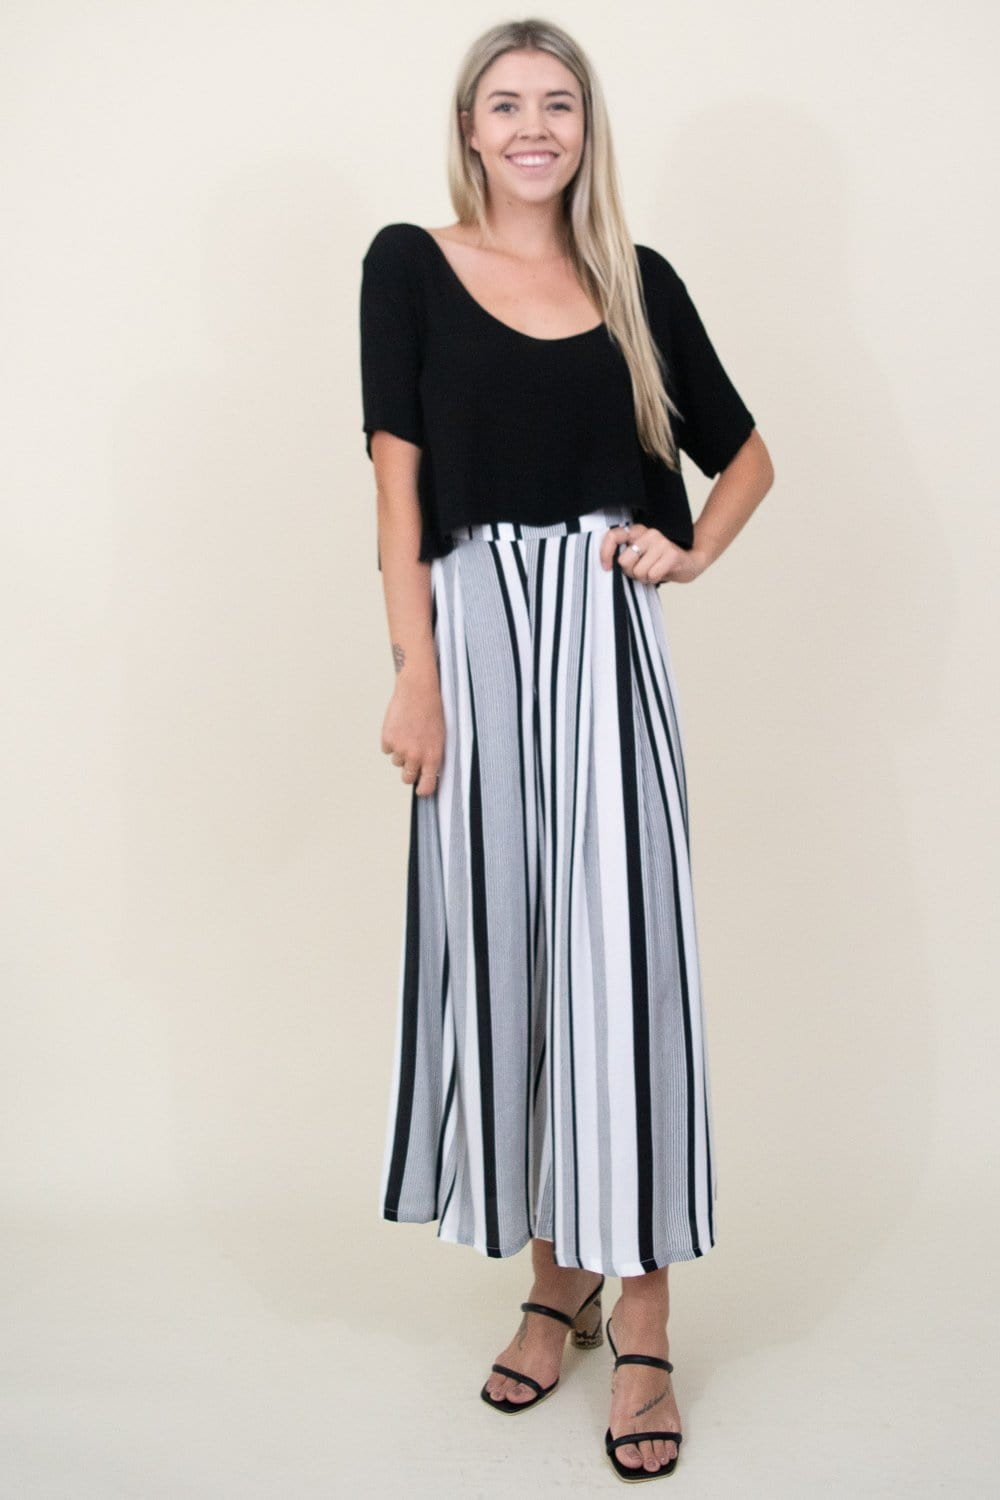 GOLDYN Perfect Palazzo Pant in Black Stripe  | Wild Dove Boutique | San Diego, CA